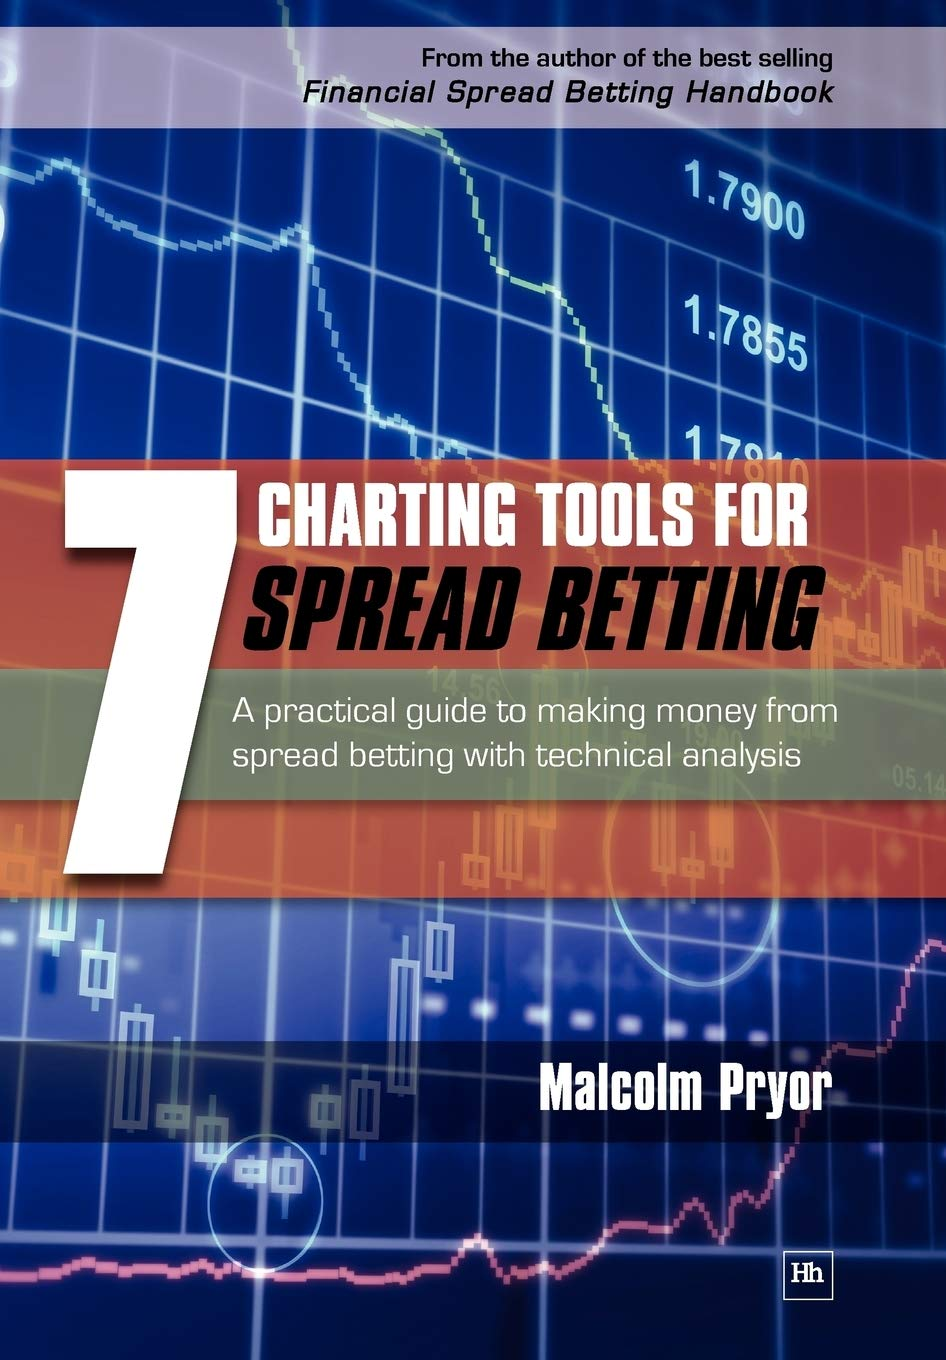 malcolm pryors spread betting techniques dvd decrypter